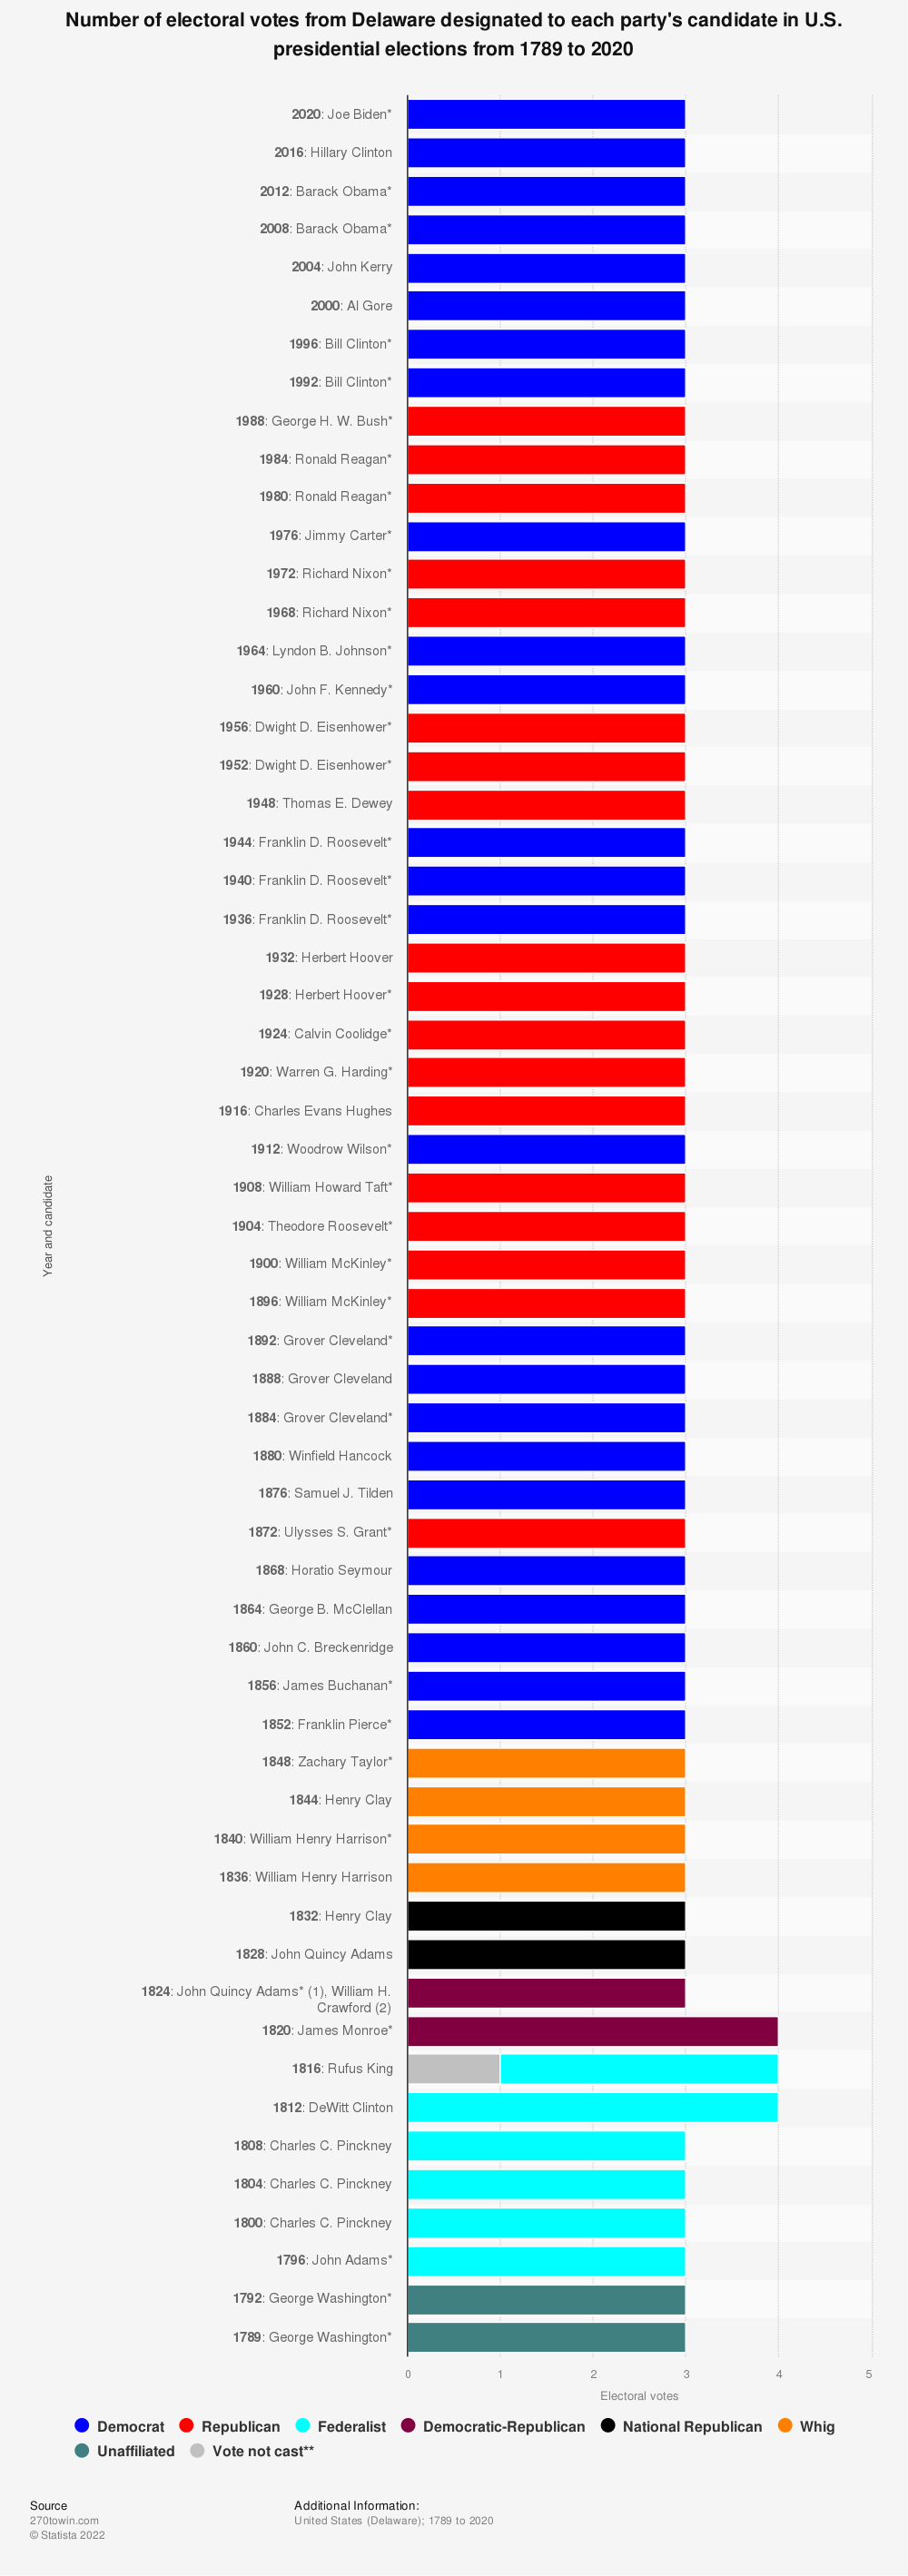 Statistic: Number of electoral votes from Delaware designated to each party's candidate in U.S. presidential elections from 1789 to 2020 | Statista